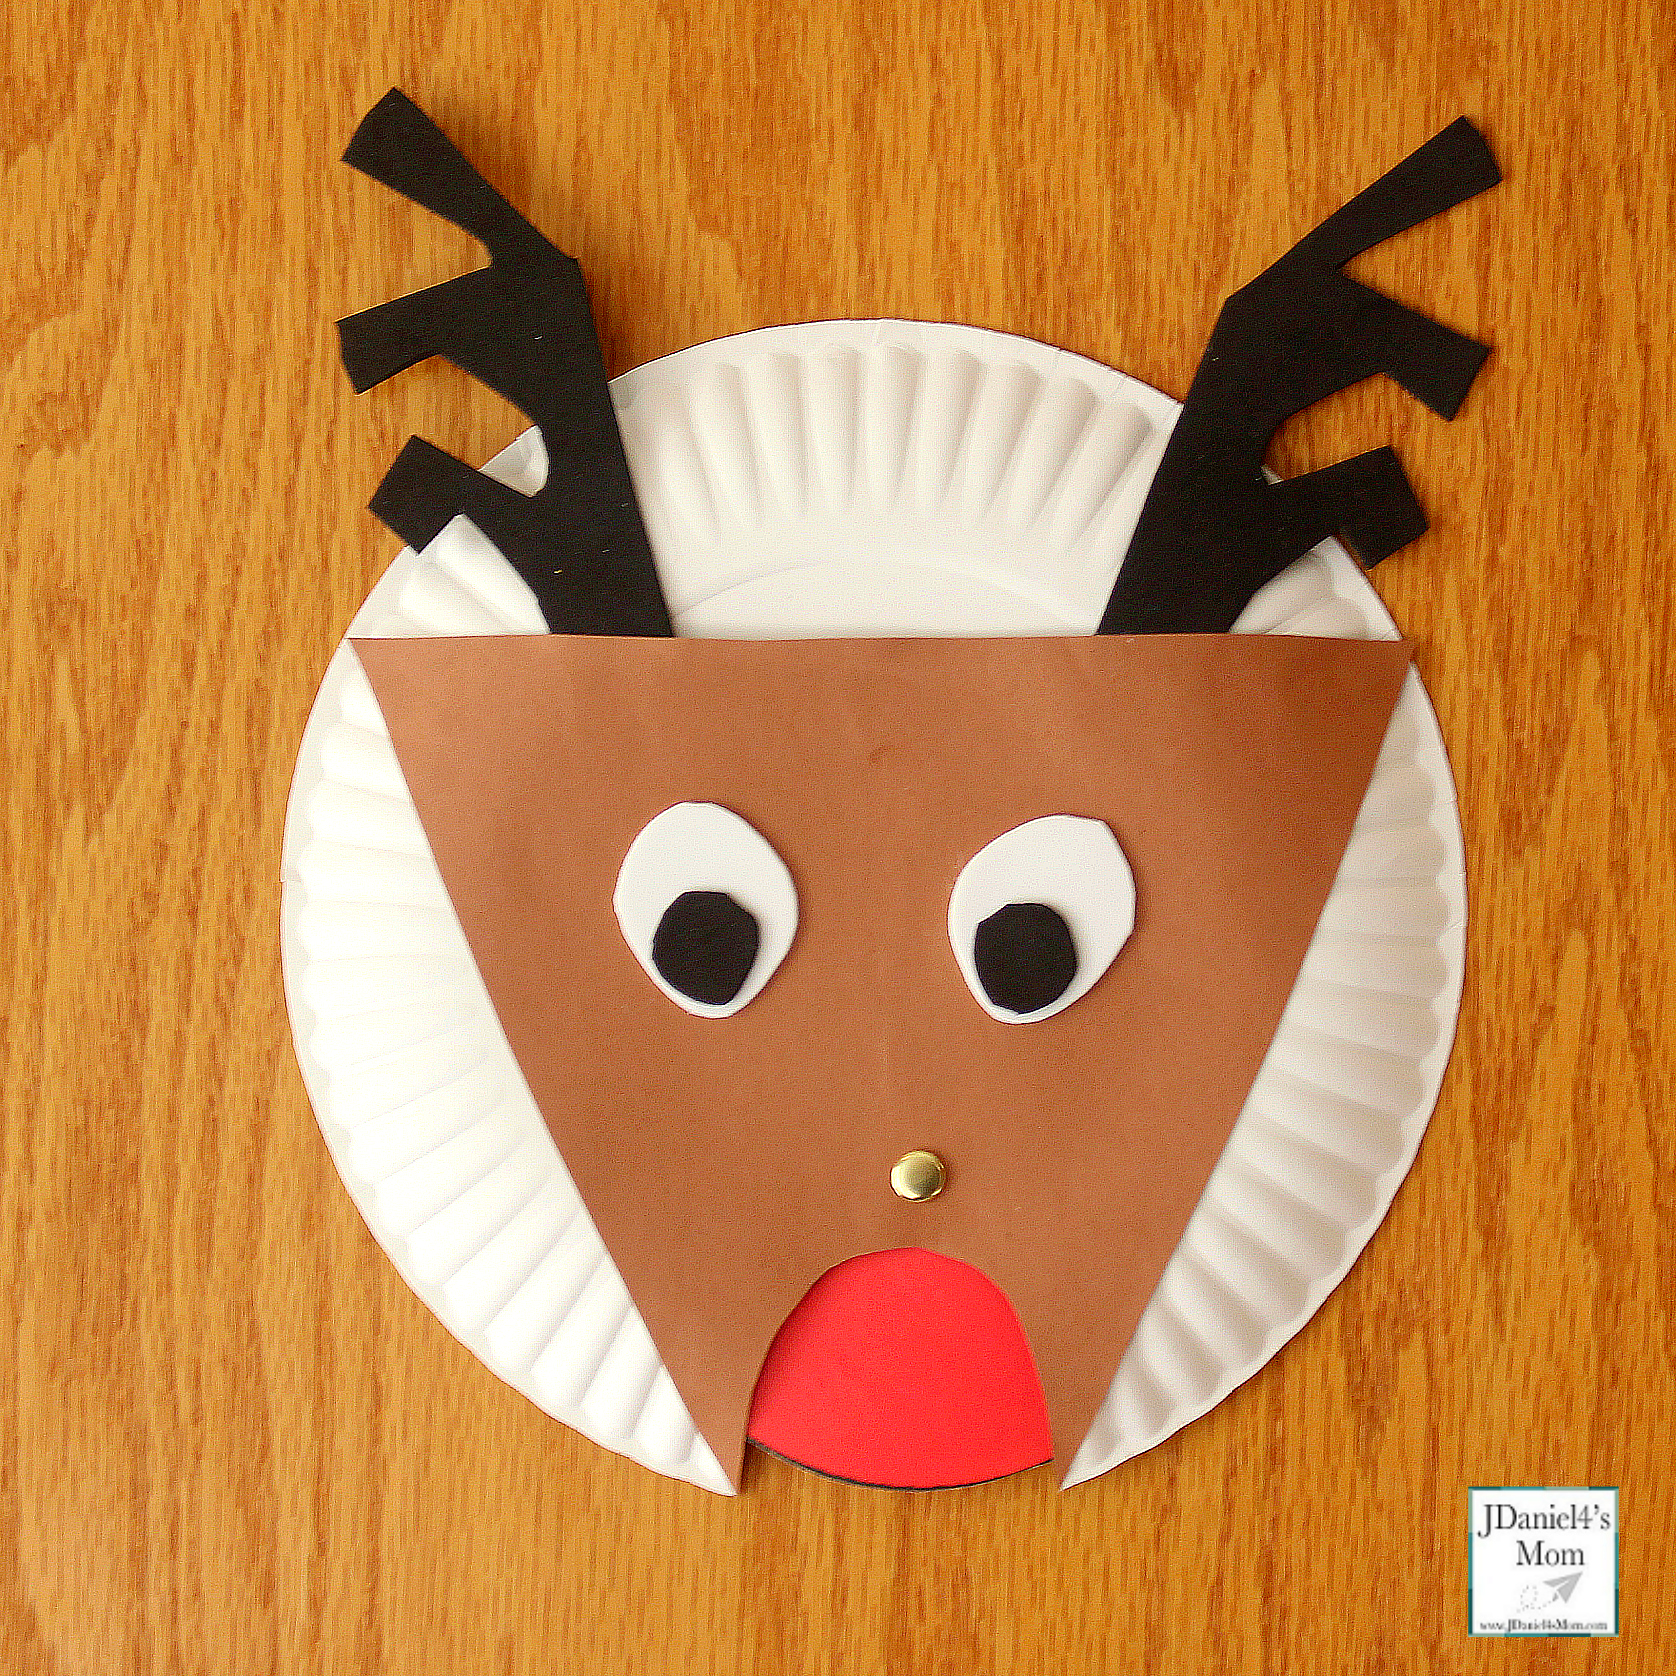 Changing the Color of the Reindeer's Nose Color Activity - Homemade Reindeer with a Red Nose